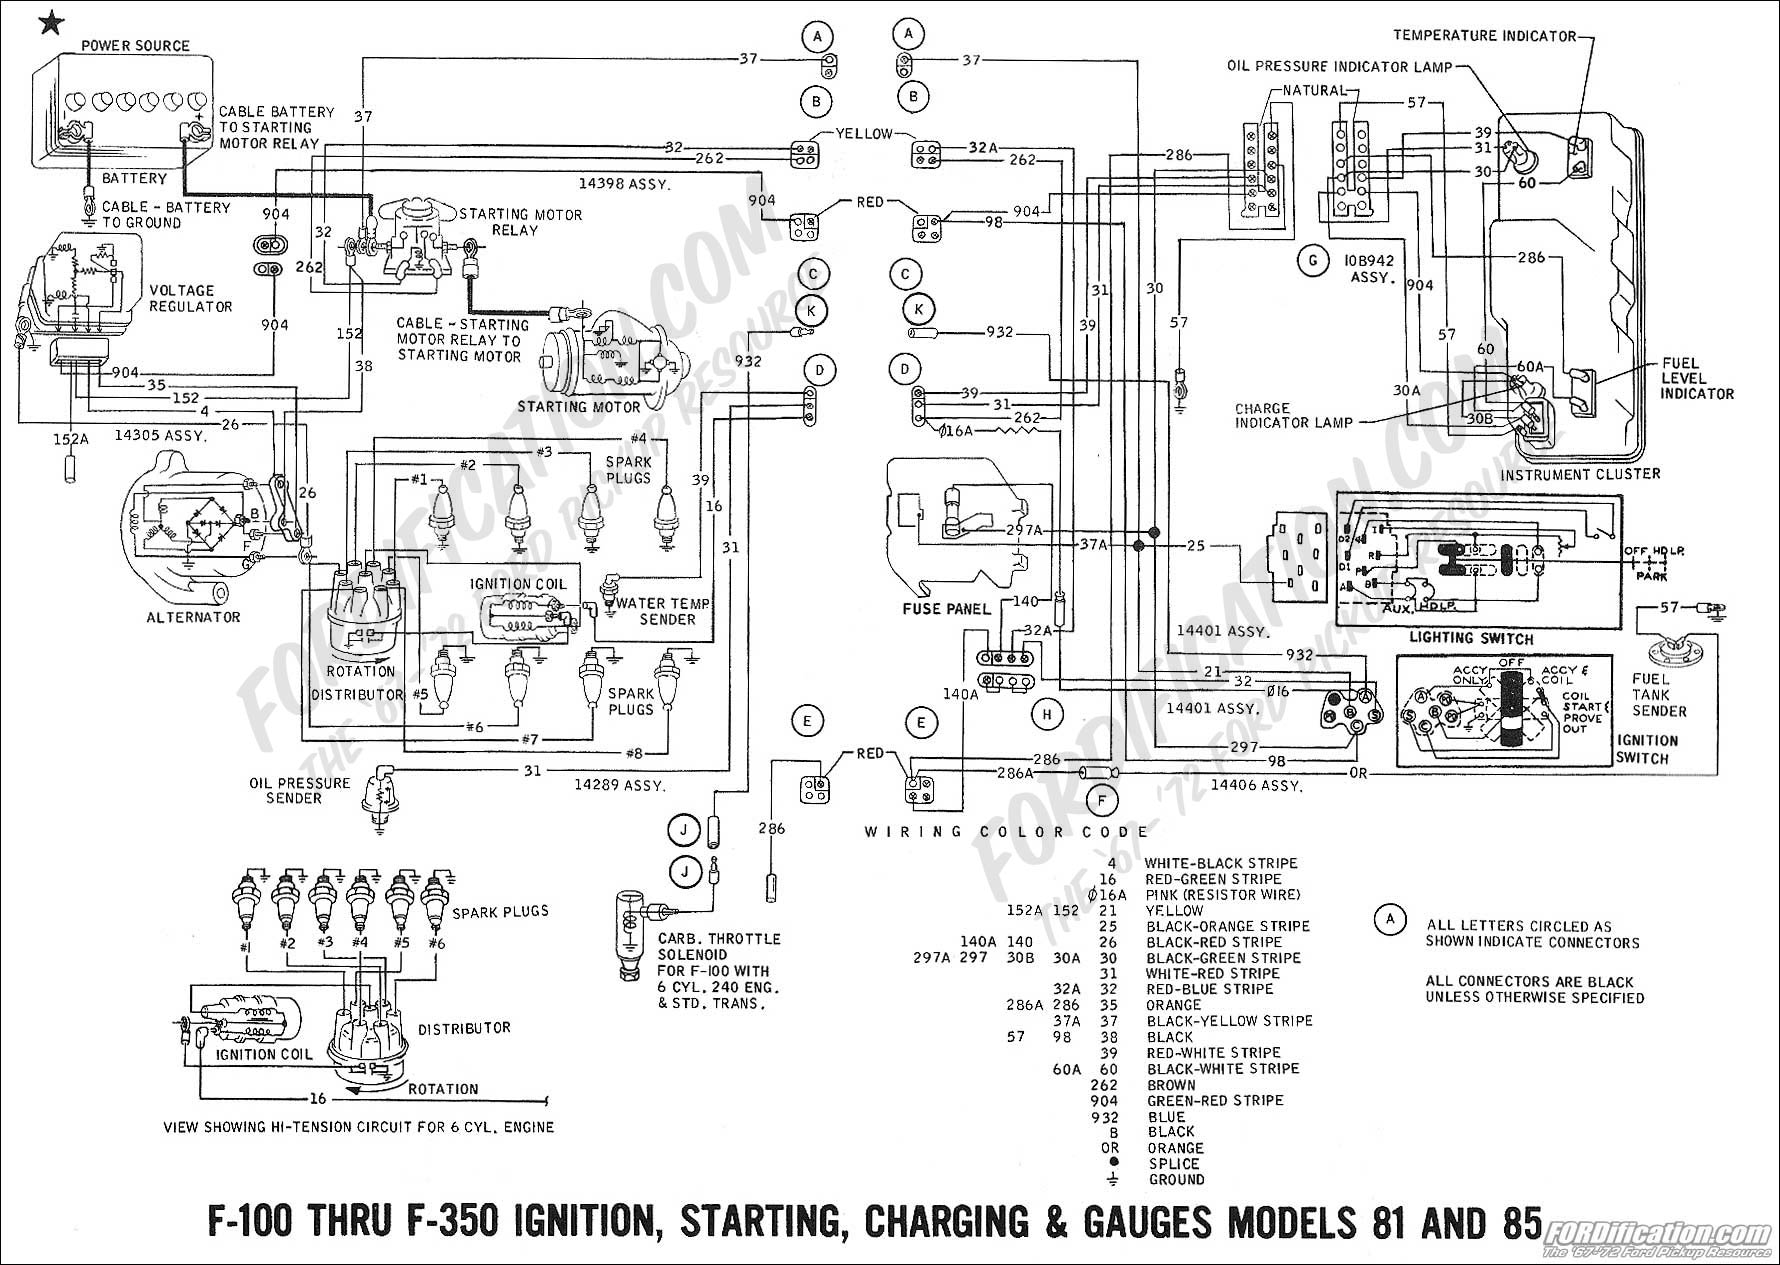 1989 Ford E 150 Wiring Diagram Auto Electrical 1998 E150 Fuse 1986 E350 Fuel 34